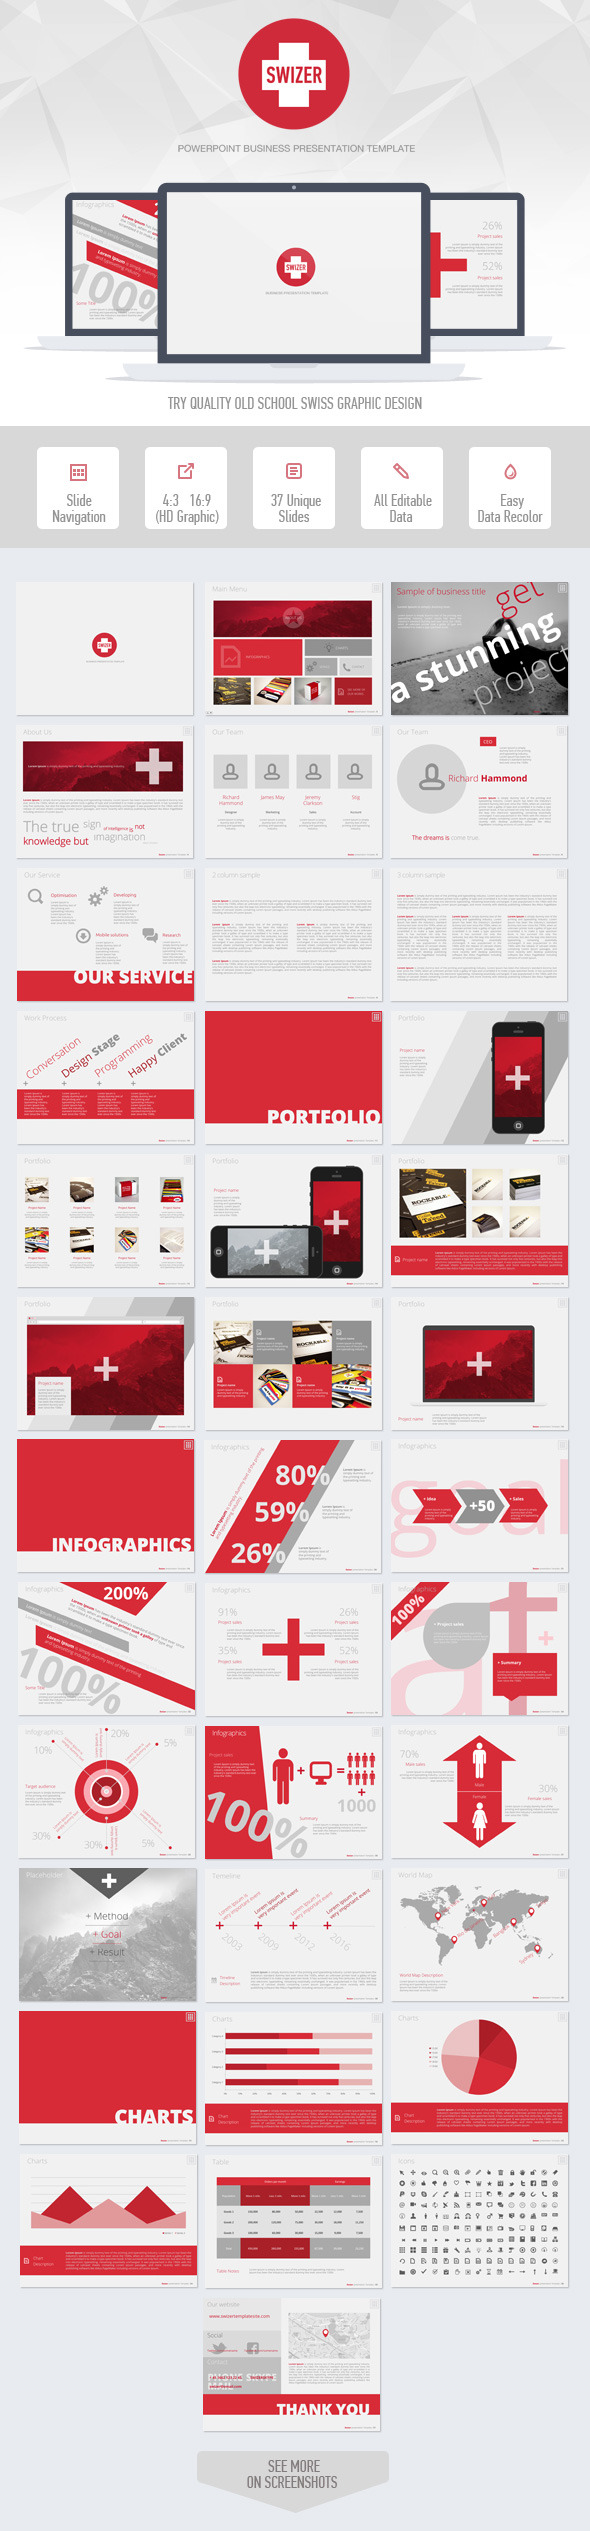 Swizer Powerpoint Presentation Template - Business PowerPoint Templates